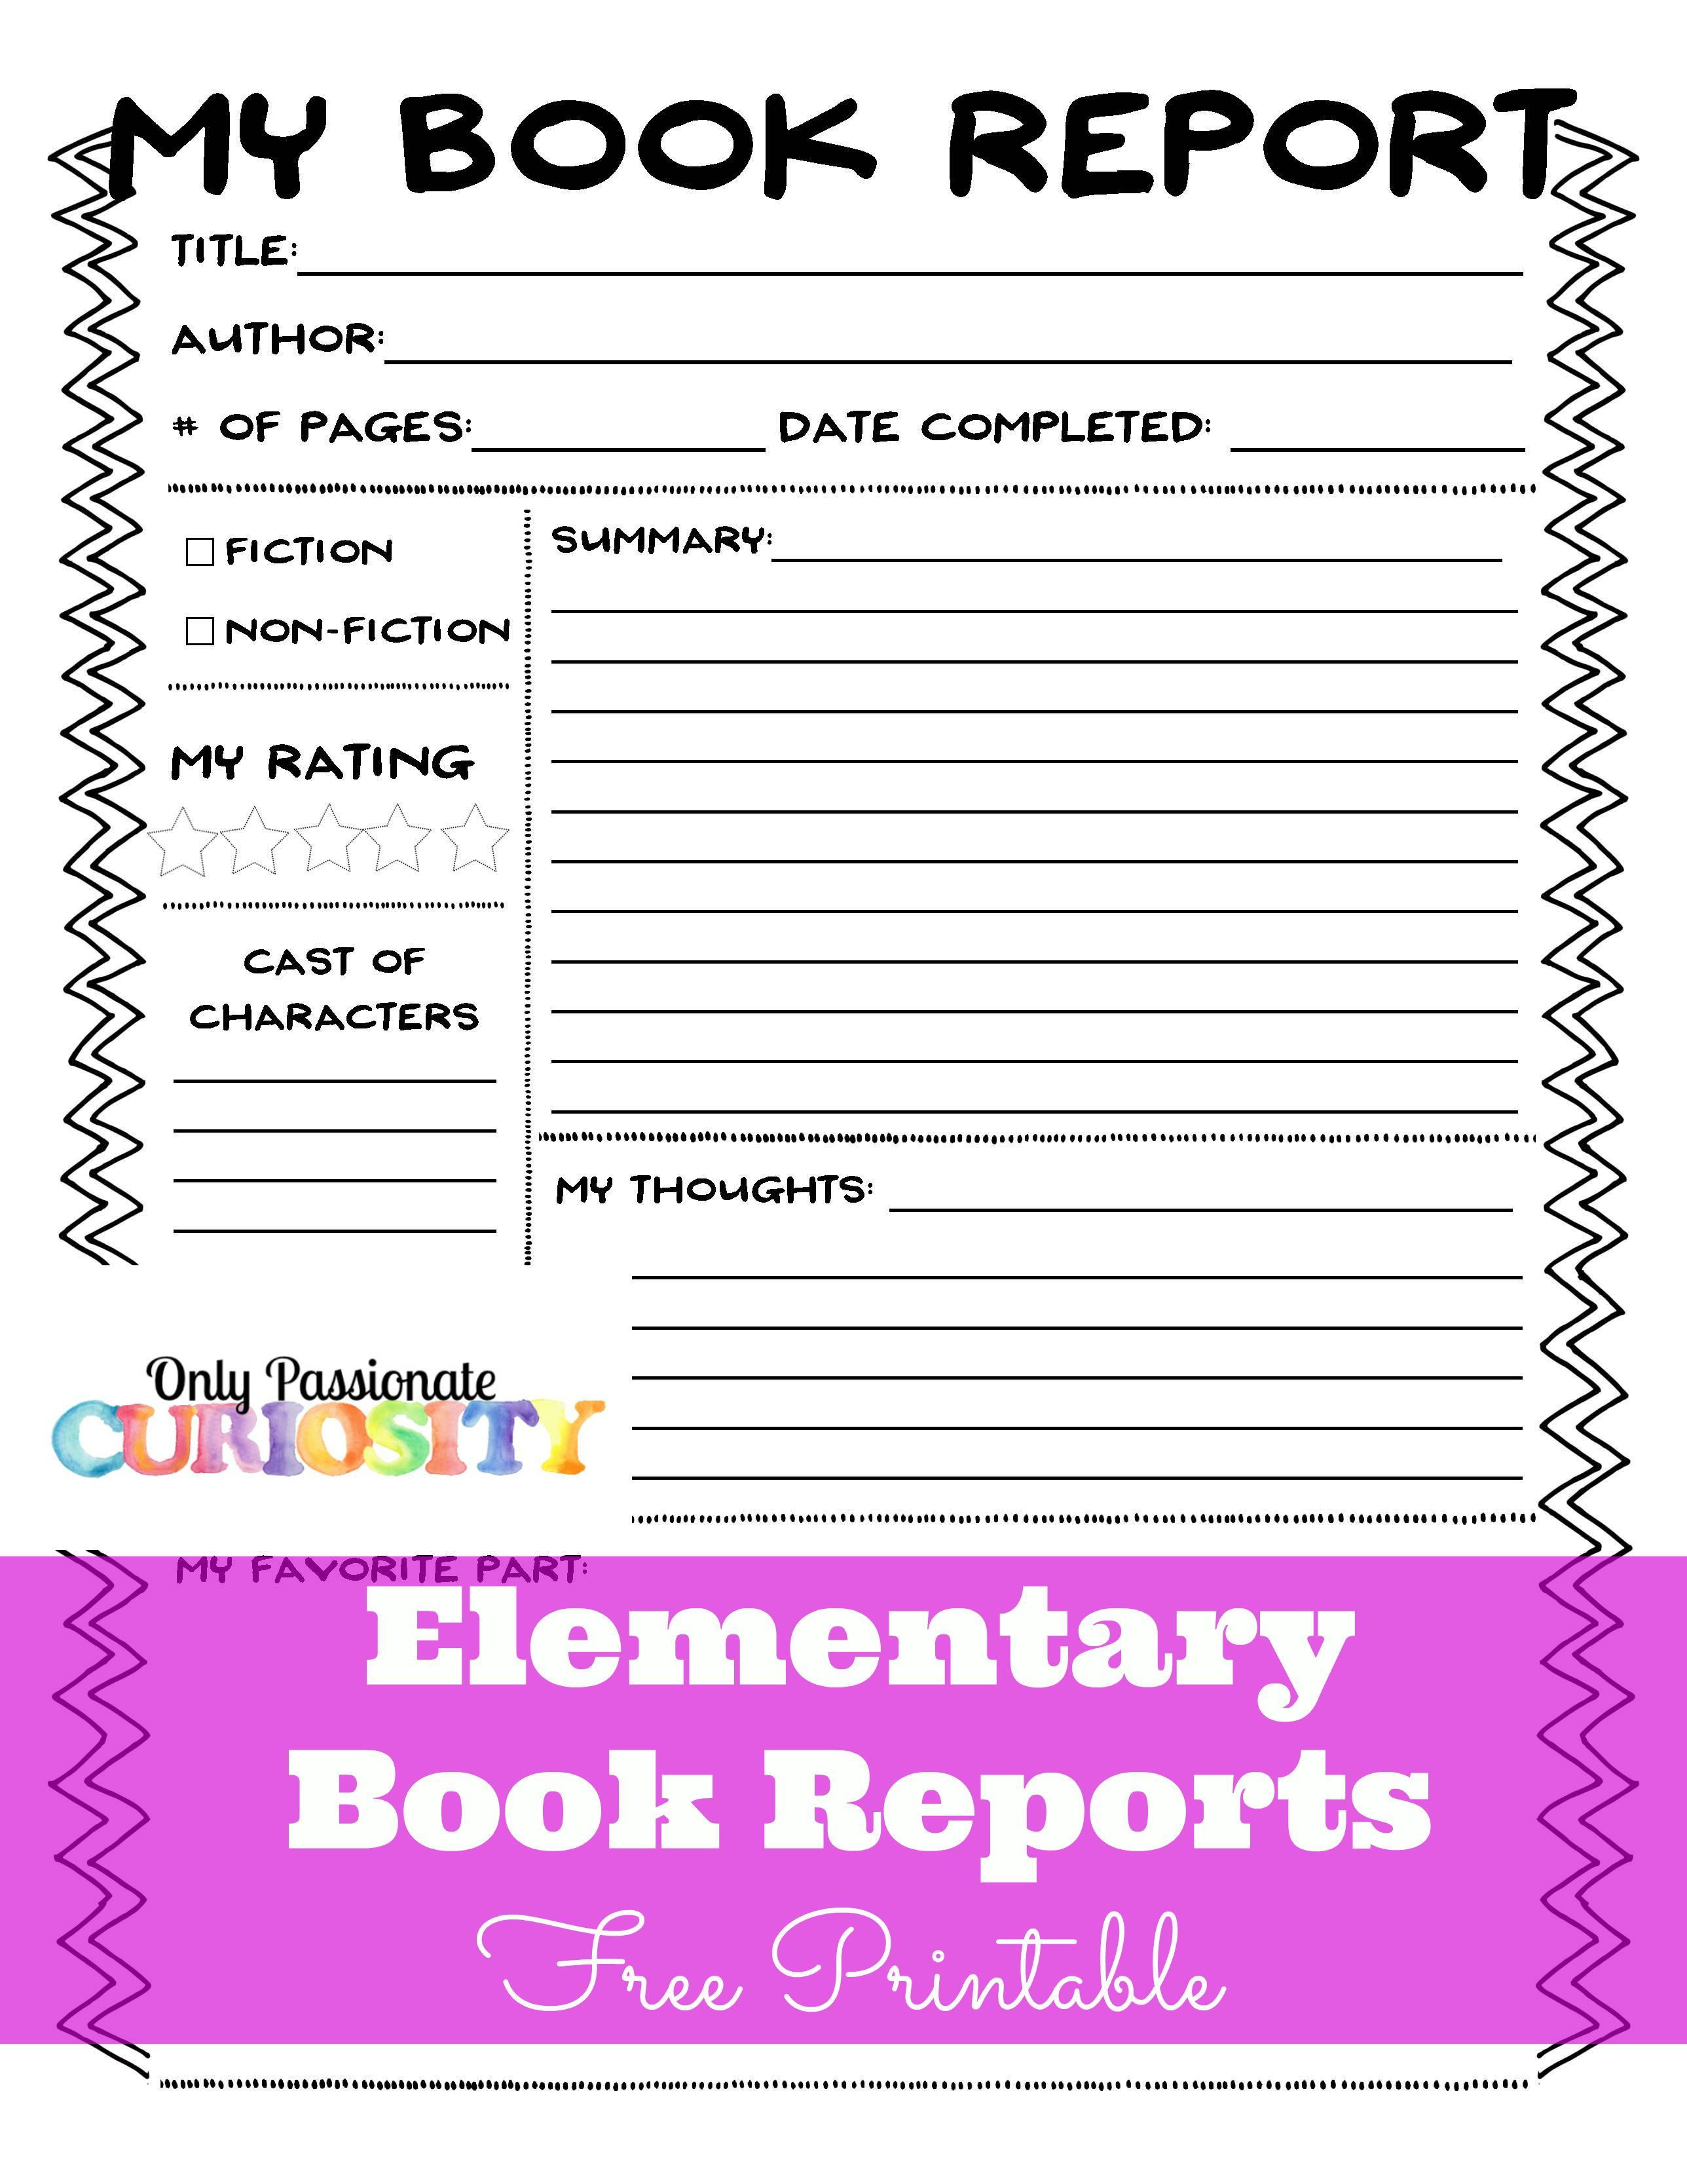 Elementary Book Reports Made Easy Book Report Templates Elementary Books Book Report [ 3334 x 2576 Pixel ]